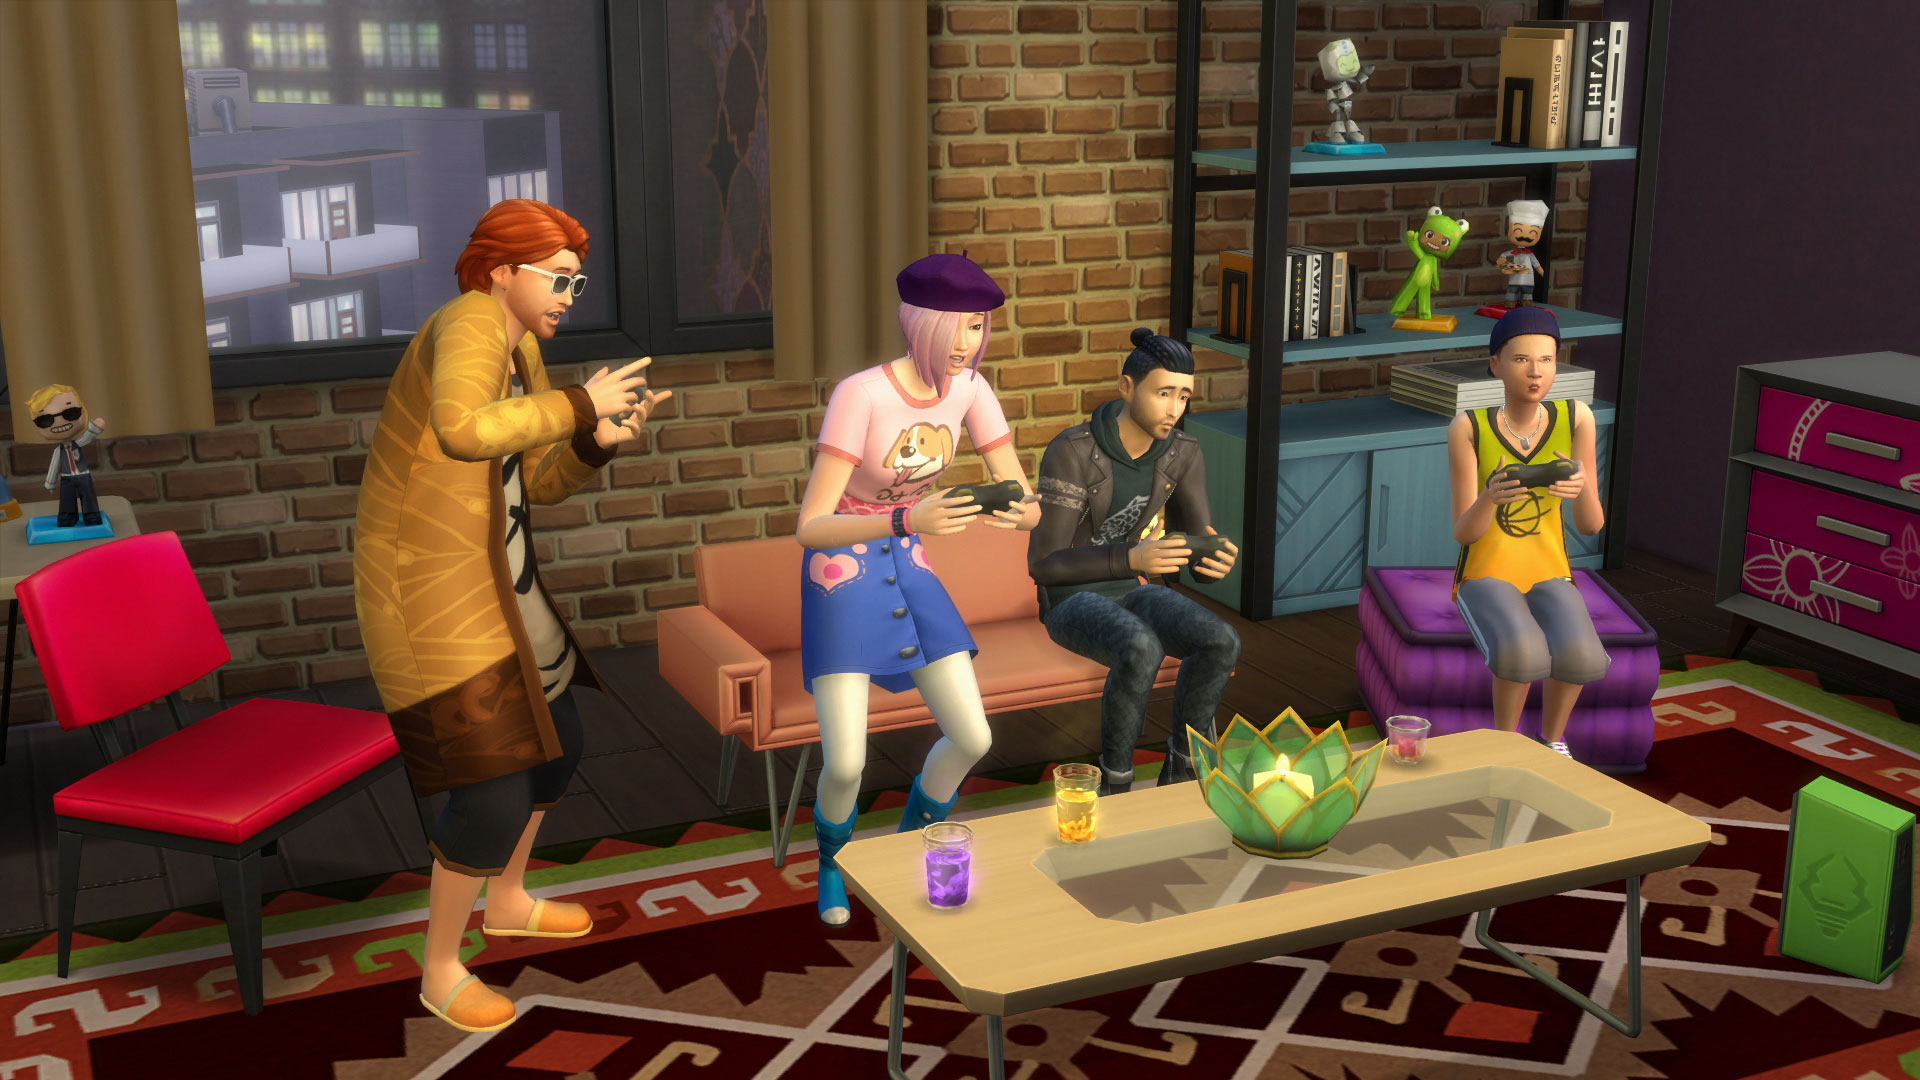 The Sims - 9 Ways Apartments in The Sims 4 City Living Are ...